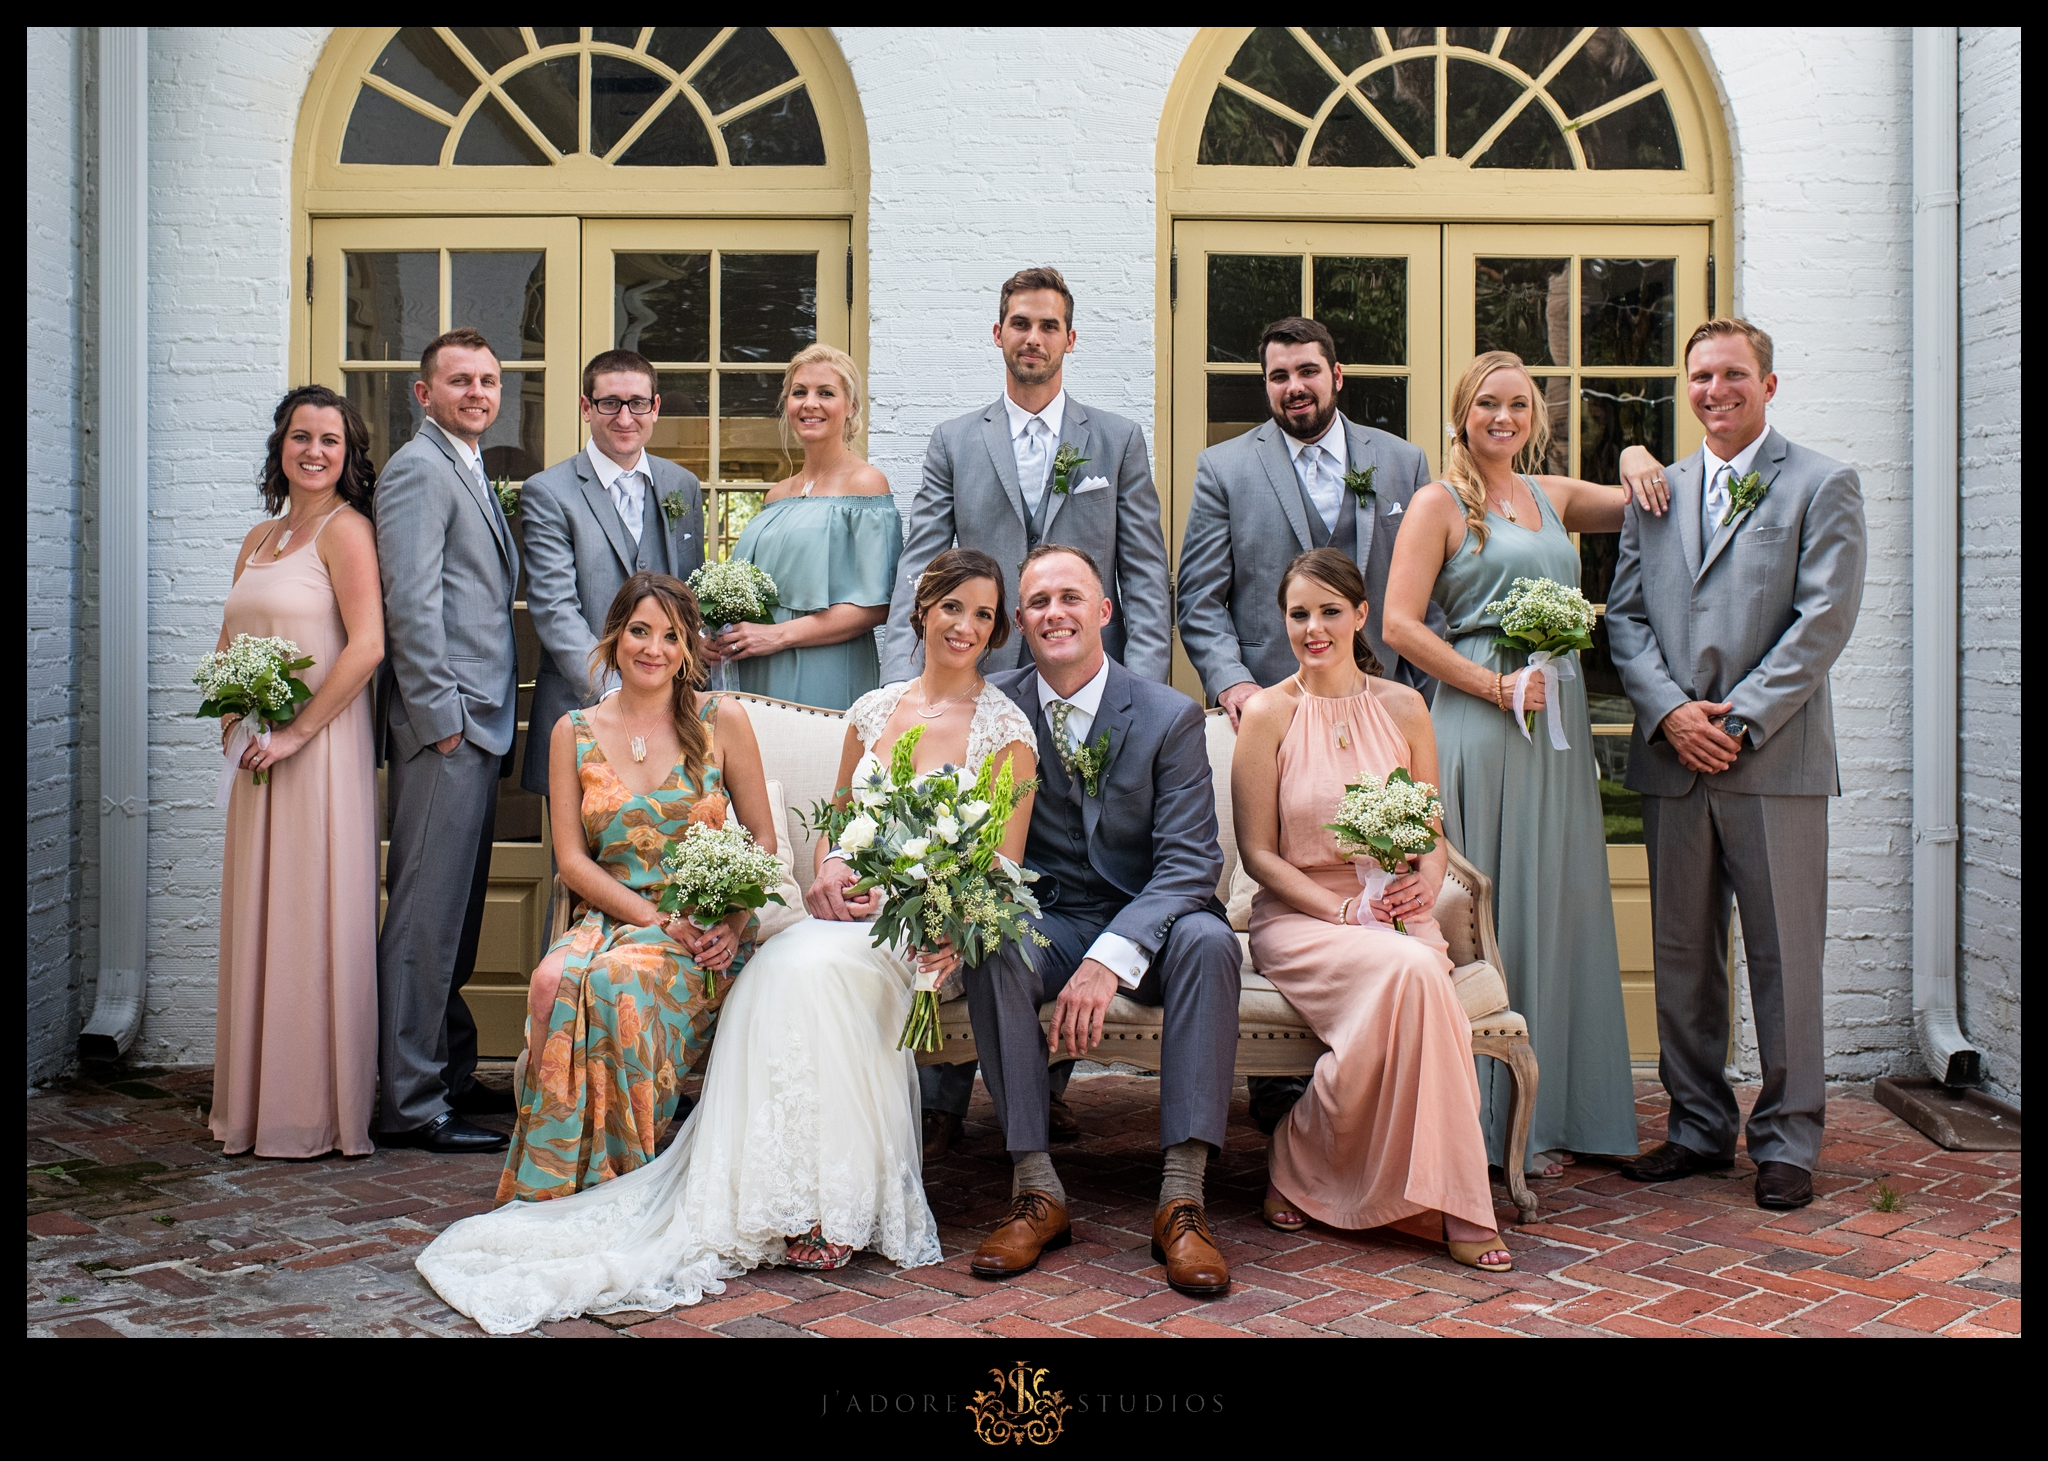 Bridal party photo in front of the Ribault Club venue